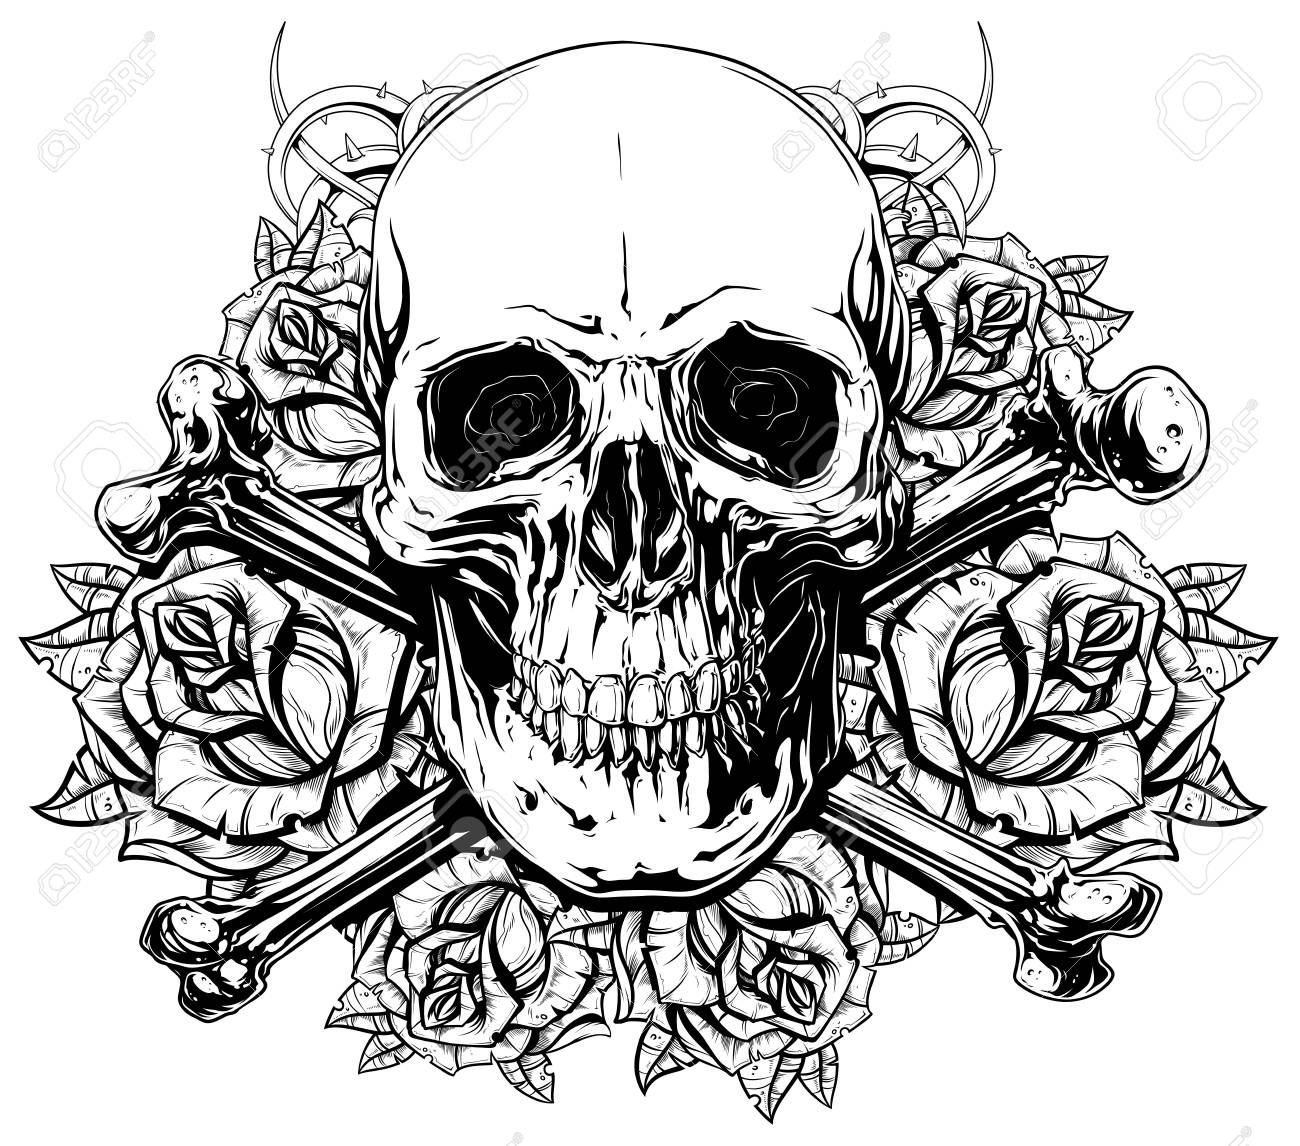 Graphic Human Skull With Crossed Bones And Roses Skull Coloring Pages Skulls Drawing Realistic Drawings